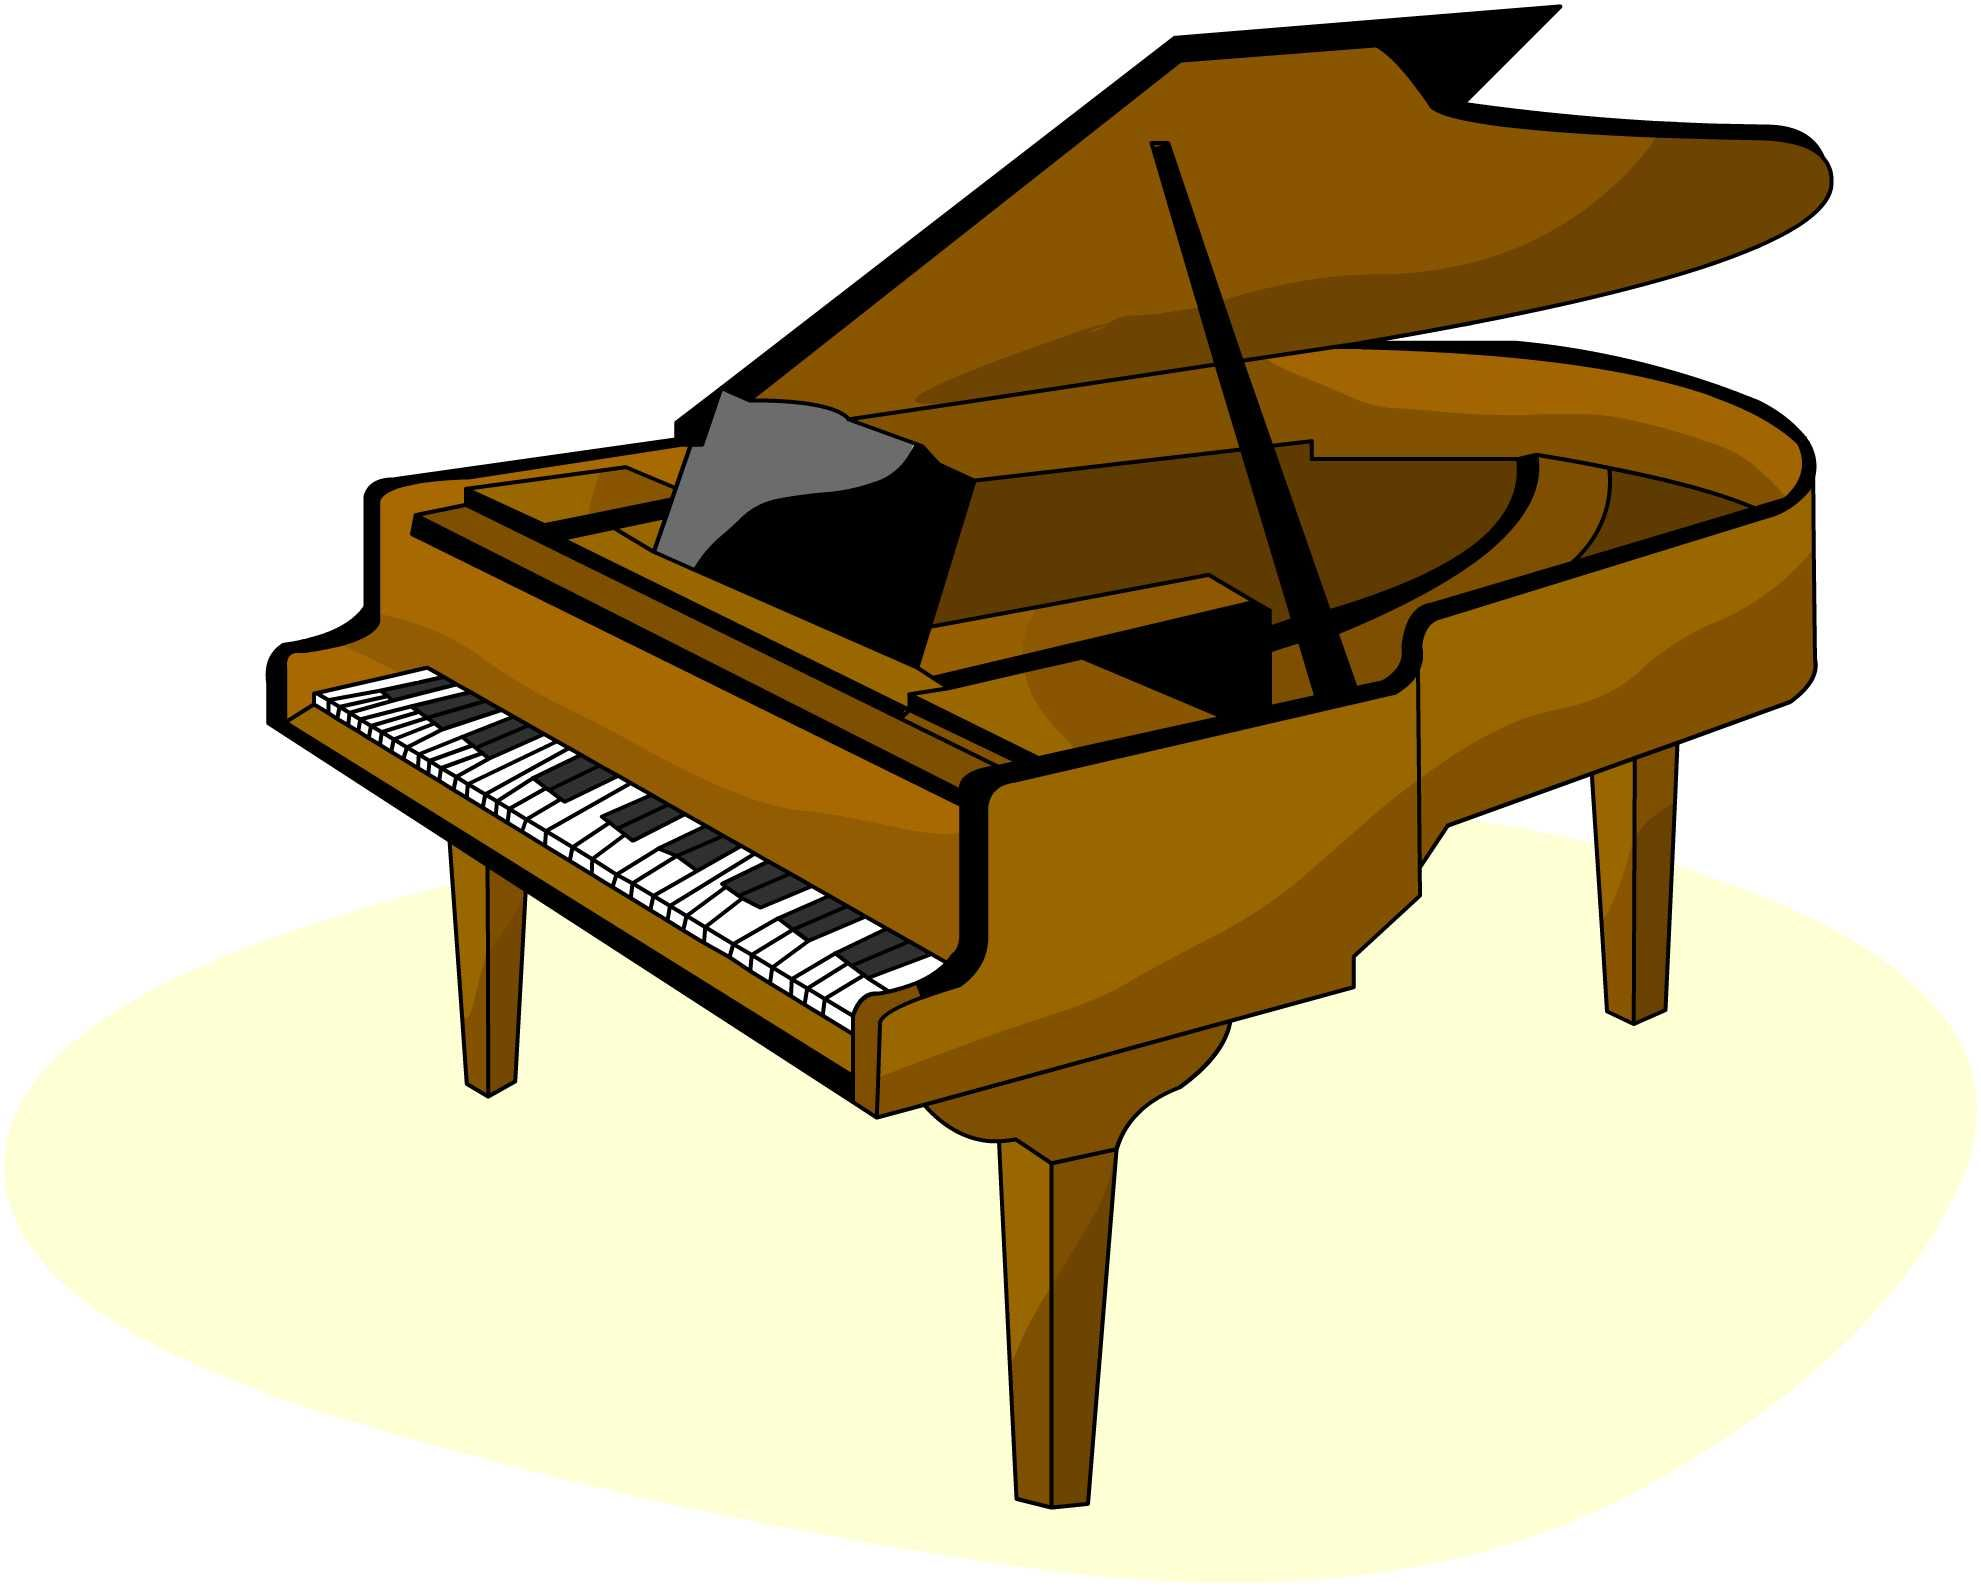 Piano Clipart Black And White | Clipart Panda - Free ...